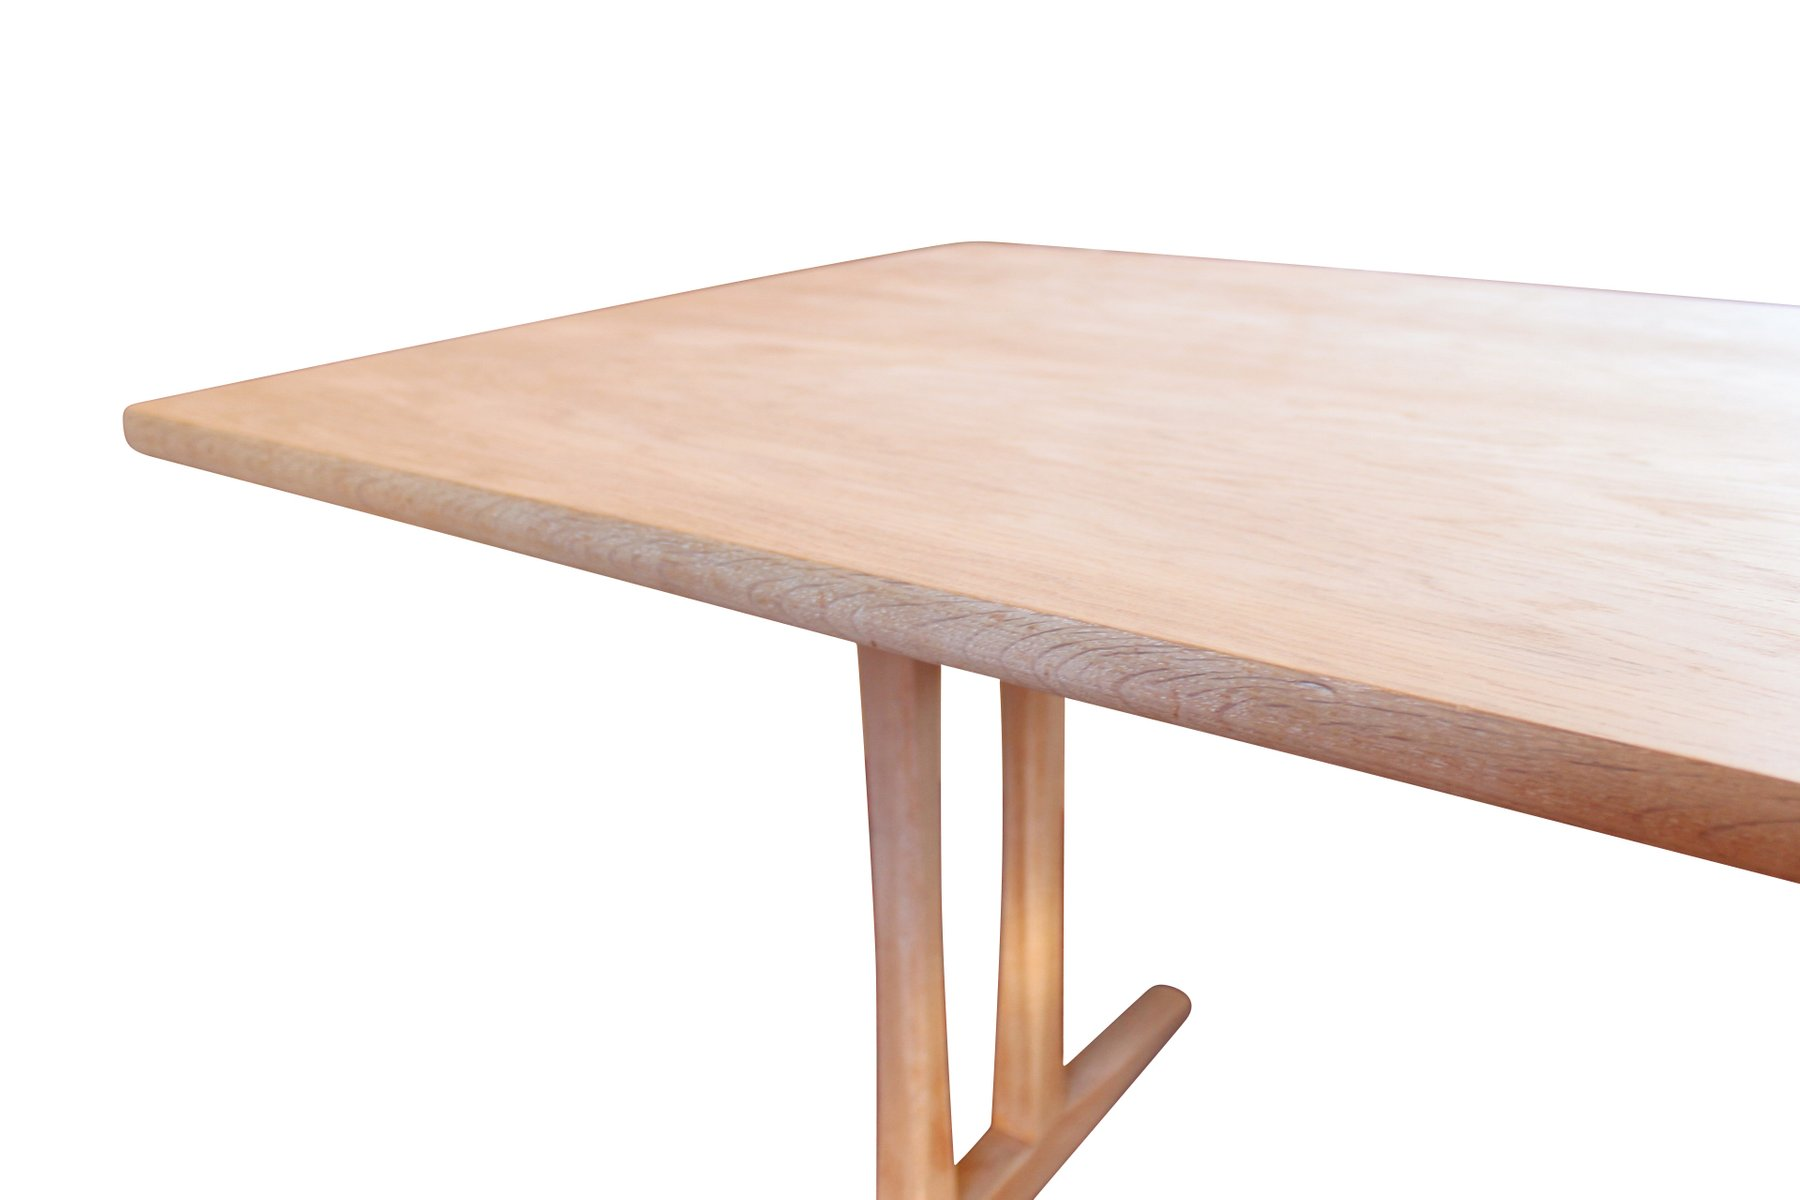 C35 Shaker Dining Table by B¸rge Mogensen for F D B Furniture for